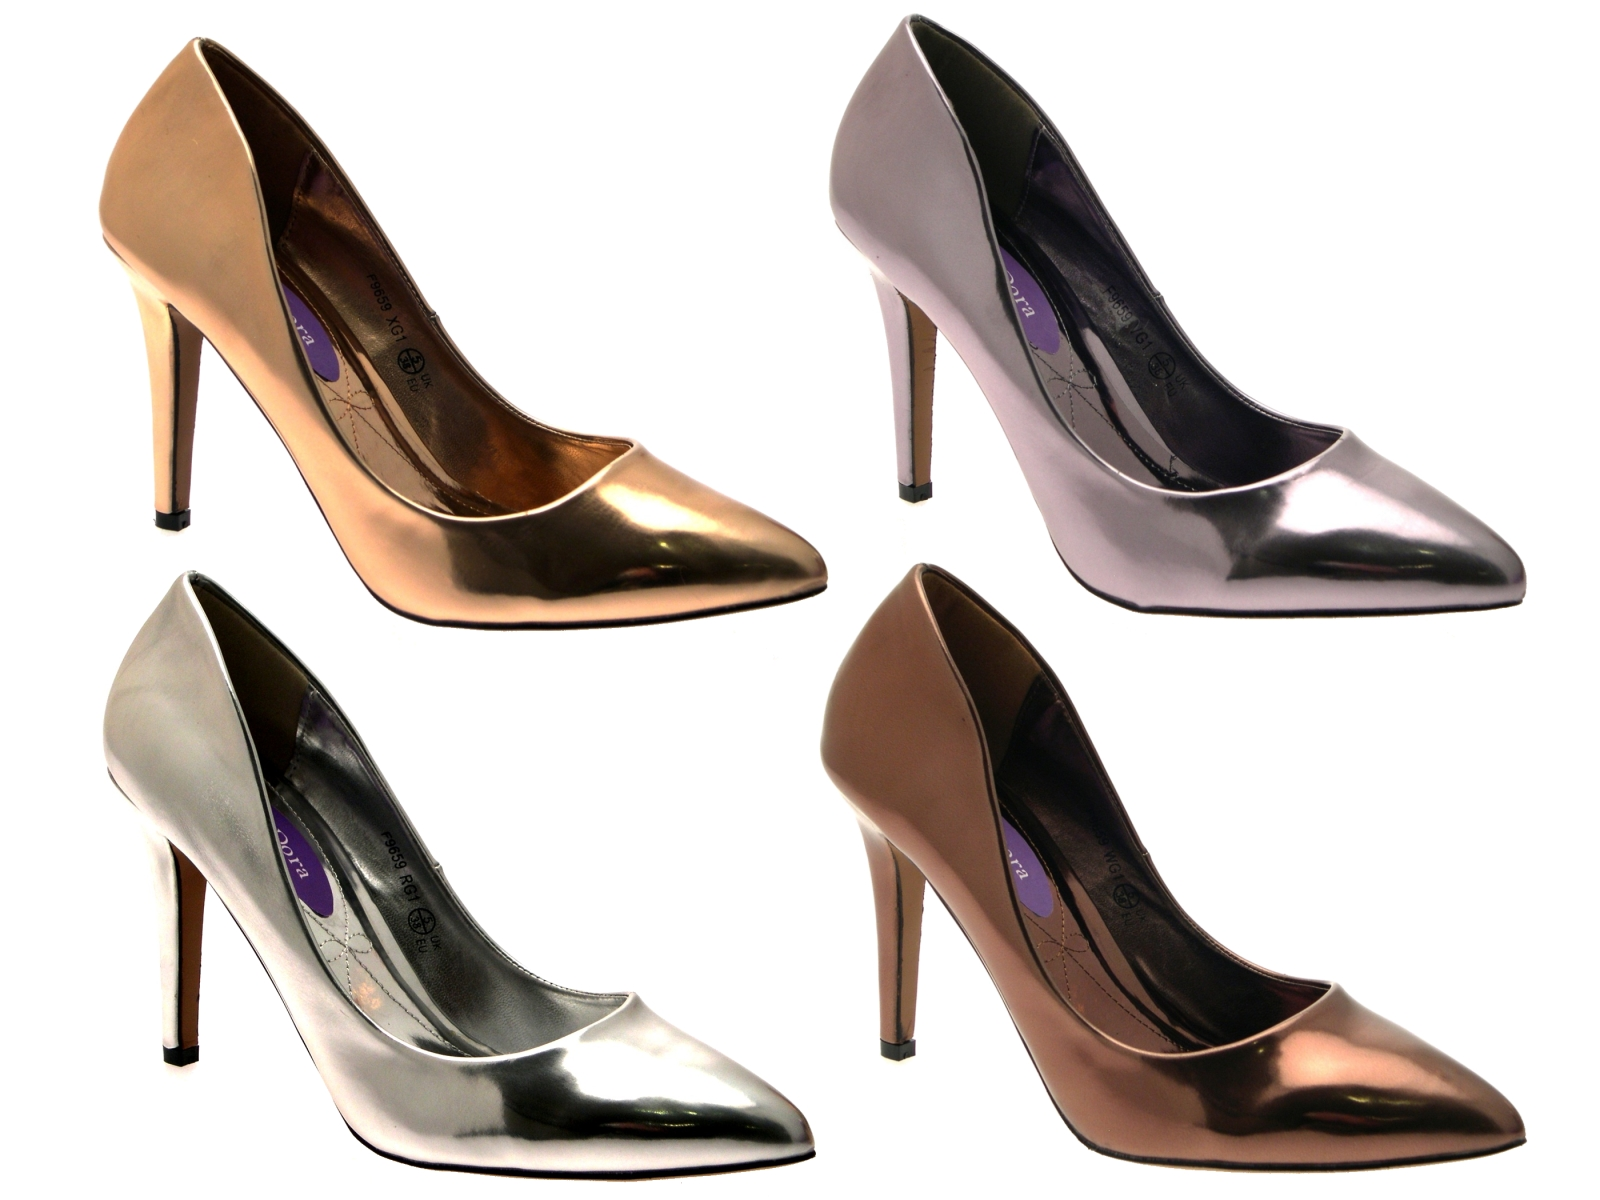 Womens-Metallic-Pointed-Toe-Court-Stiletto-High-Heels-Ladies-Work-Office-Shoes thumbnail 37